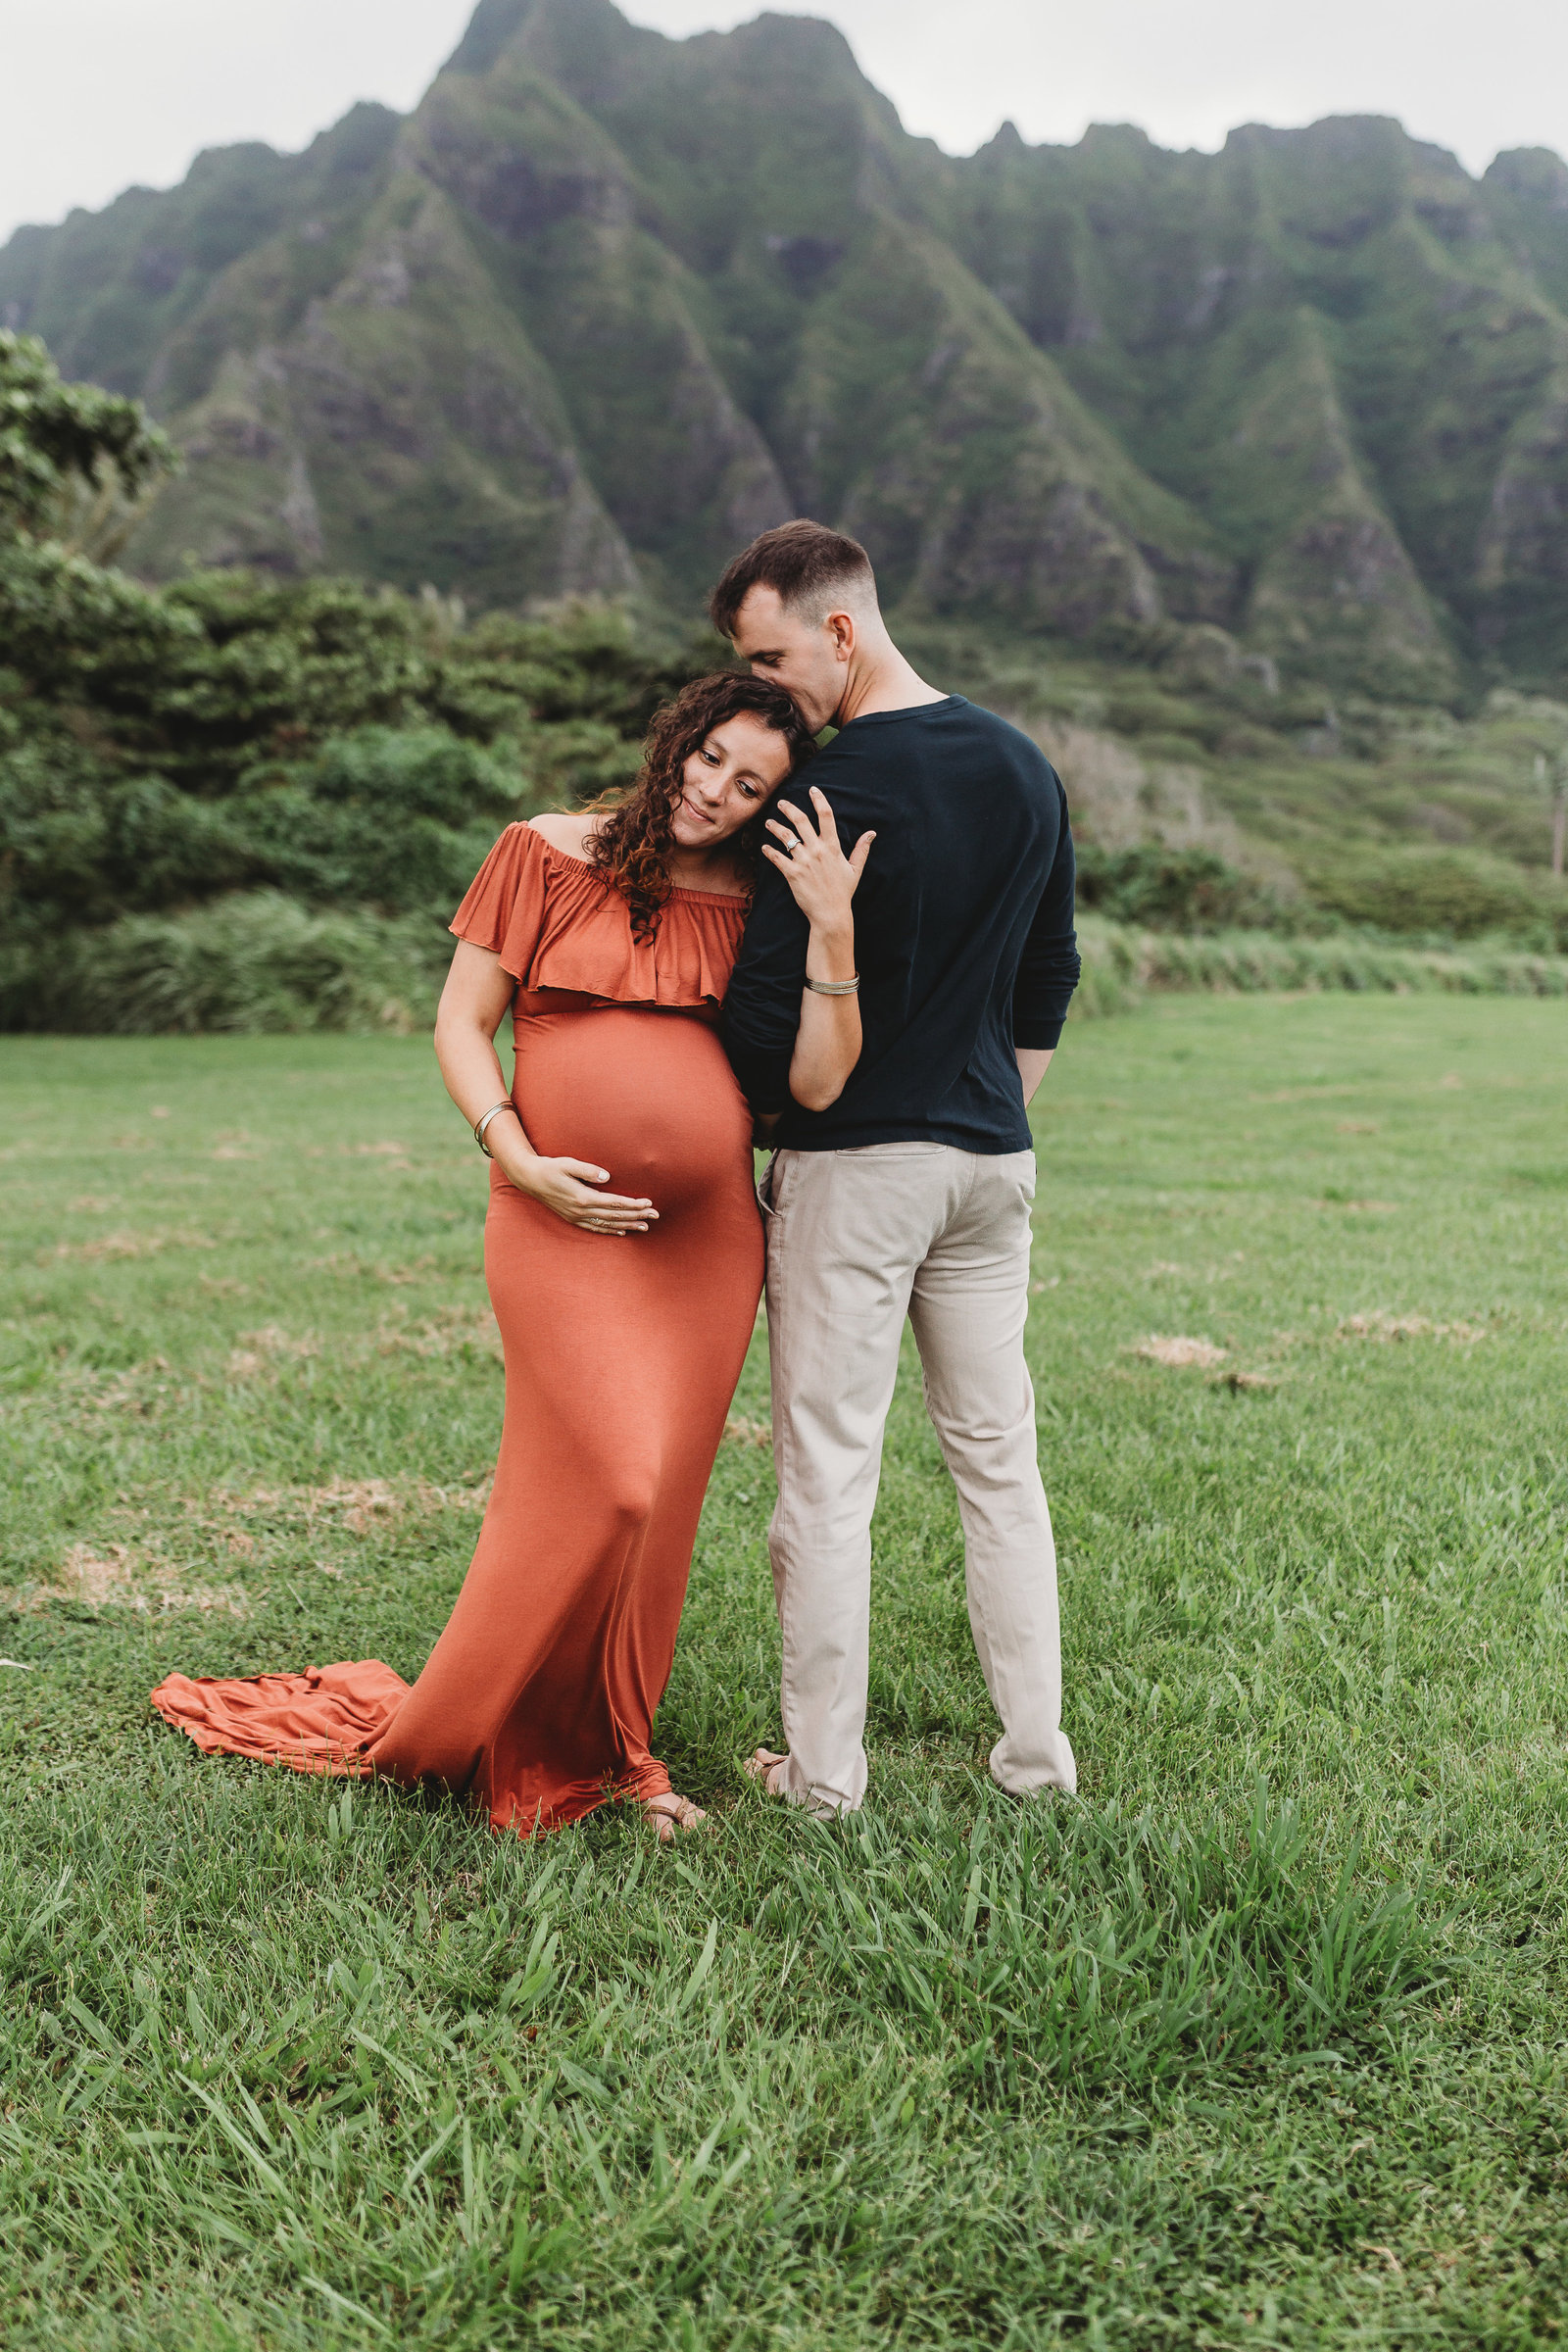 Couples Maternity Photography Shoot - Pregnant Couple standing in the grass with the woman cradling her belly - Honolulu, Oahu, Hawaii - Brooke Flanagan Maternity Photographer